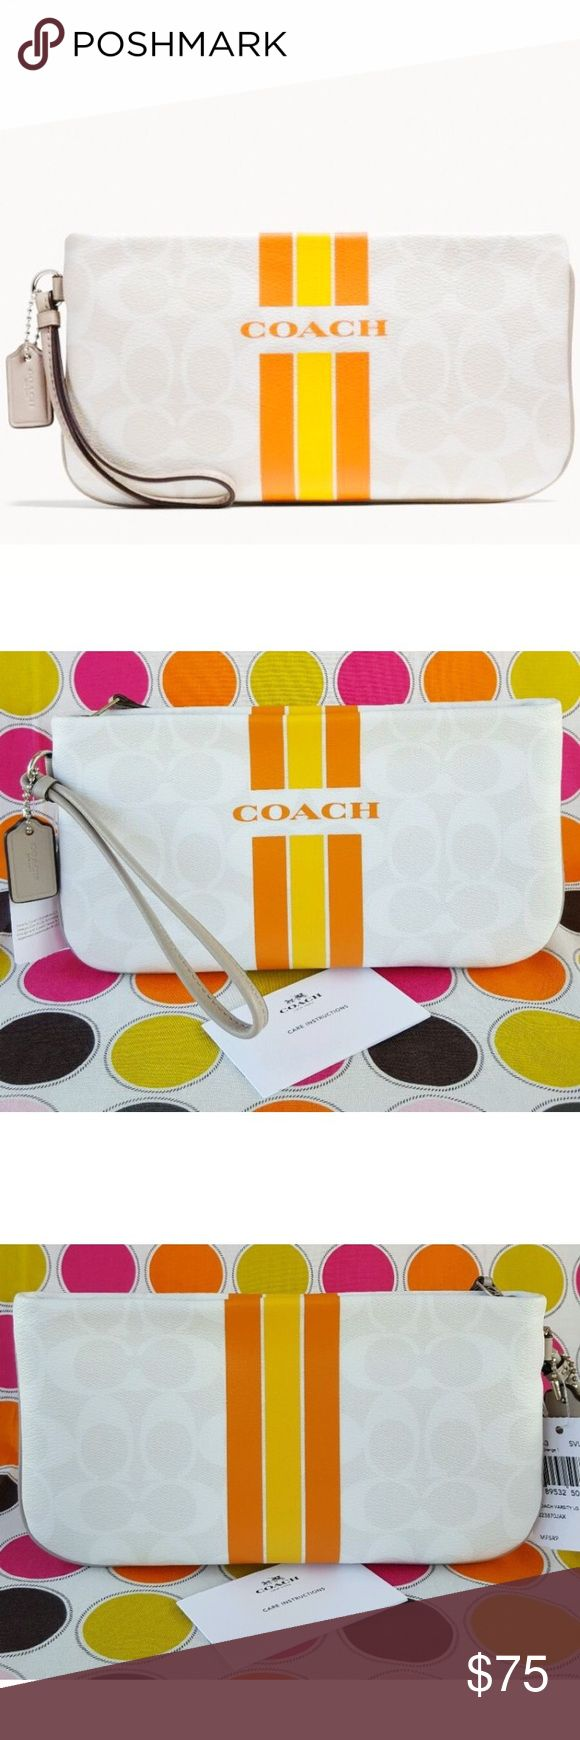 NWT Large Coach Varsity zippered wristlet/wallet Gorgeous wristlet/ wallet! Perfect for all of your money, cars and cell phone! Beautiful spring like colors that can be worn casually or to a great event! Comes with the Coach box, tags, card cards and coach shopping bag. No trades thank you. Coach Bags Clutches & Wristlets